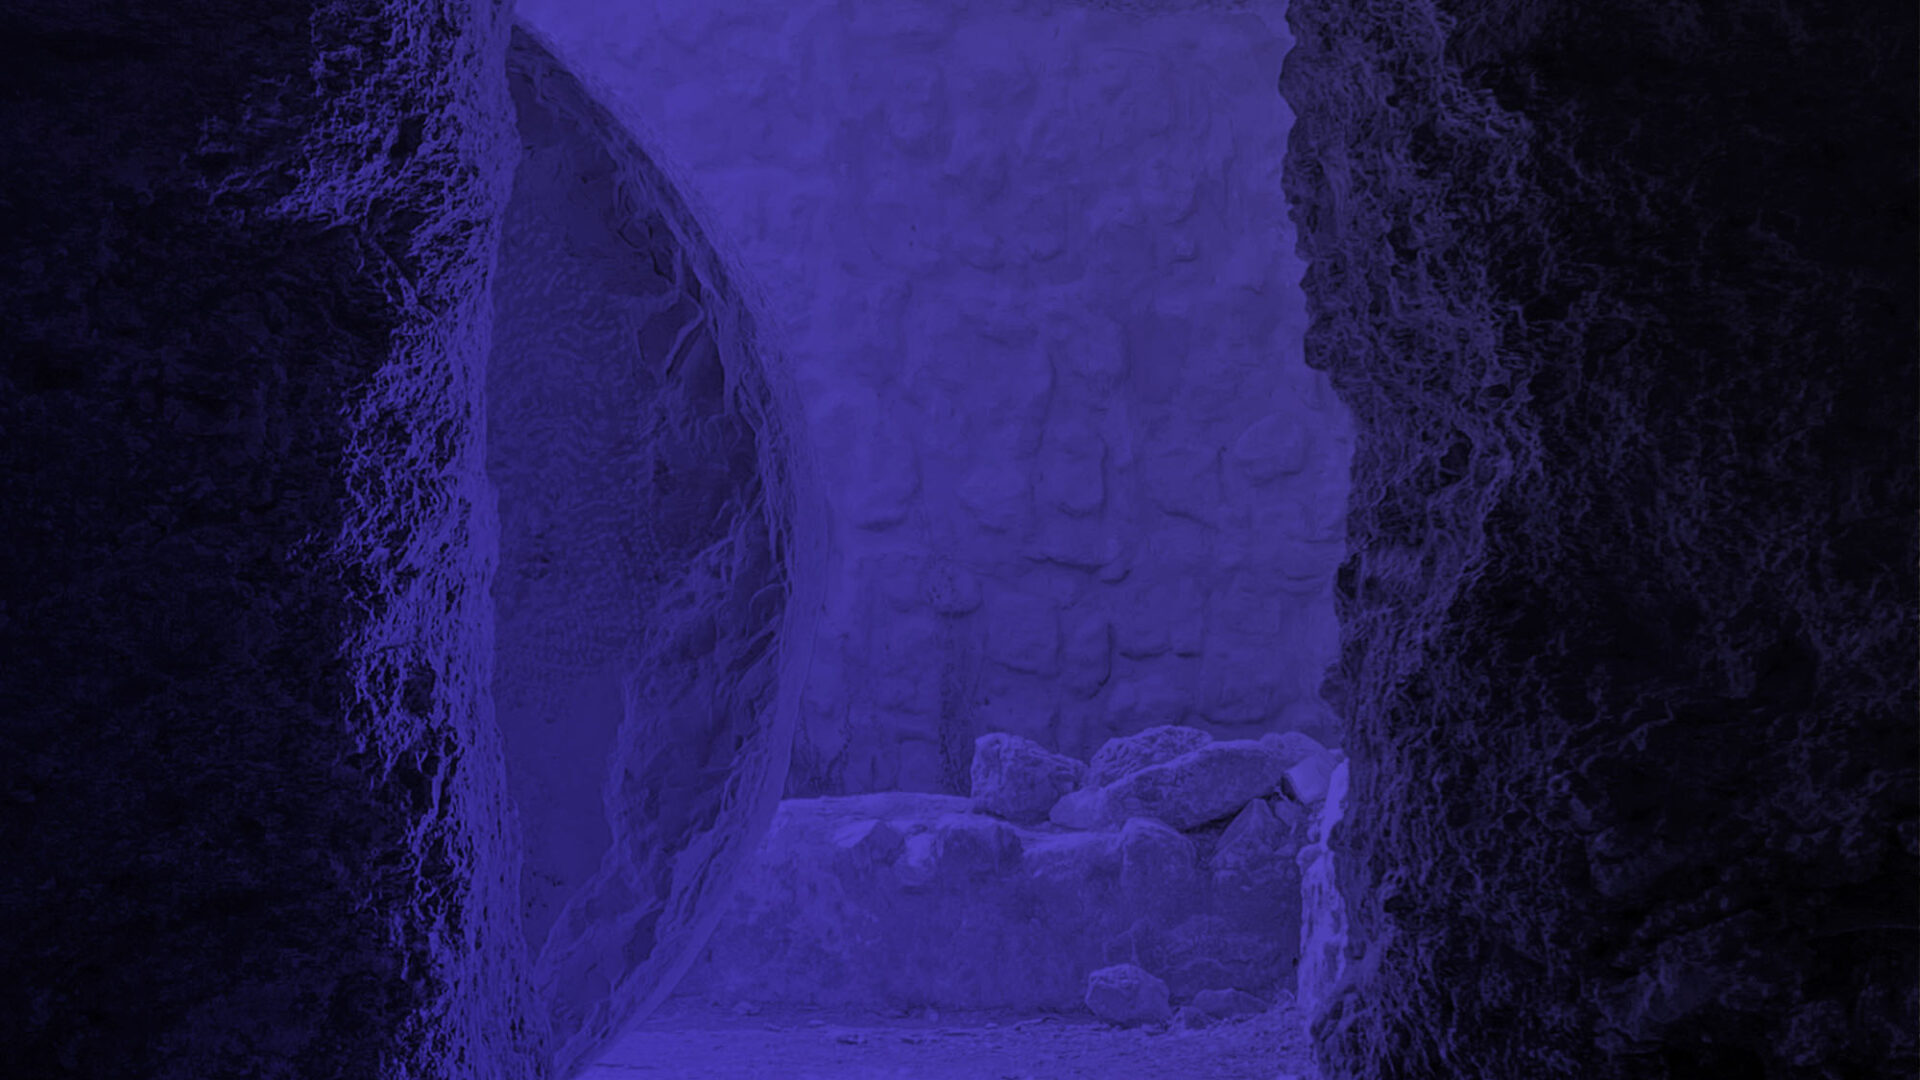 Who is Guarding the Tomb?